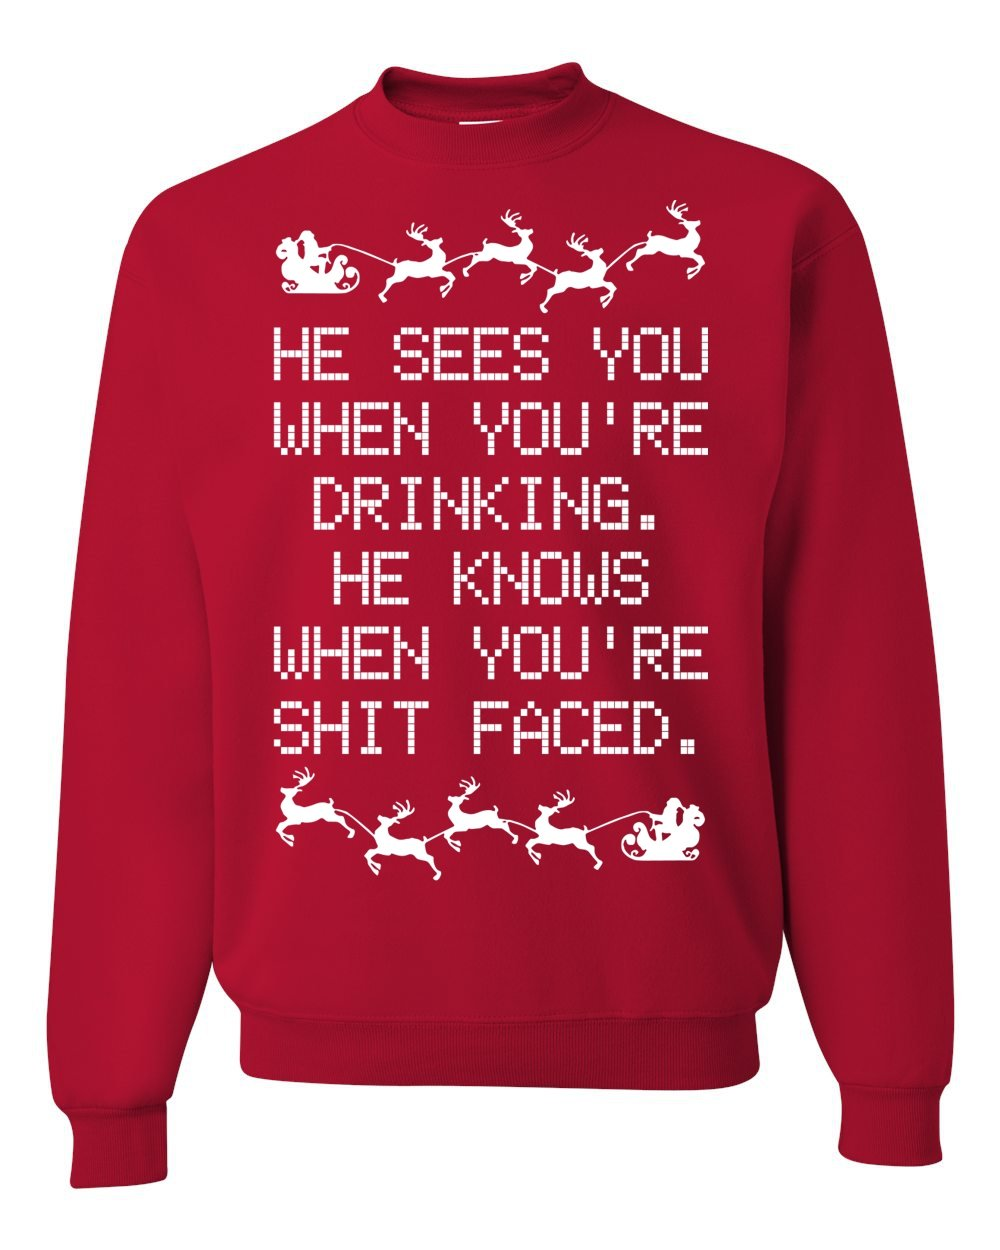 1b2eca115 He Knows When You're Shit Faced Ugly Christmas Sweater Unisex Crewneck  Sweatshirt ( Red , XL ) Apparel